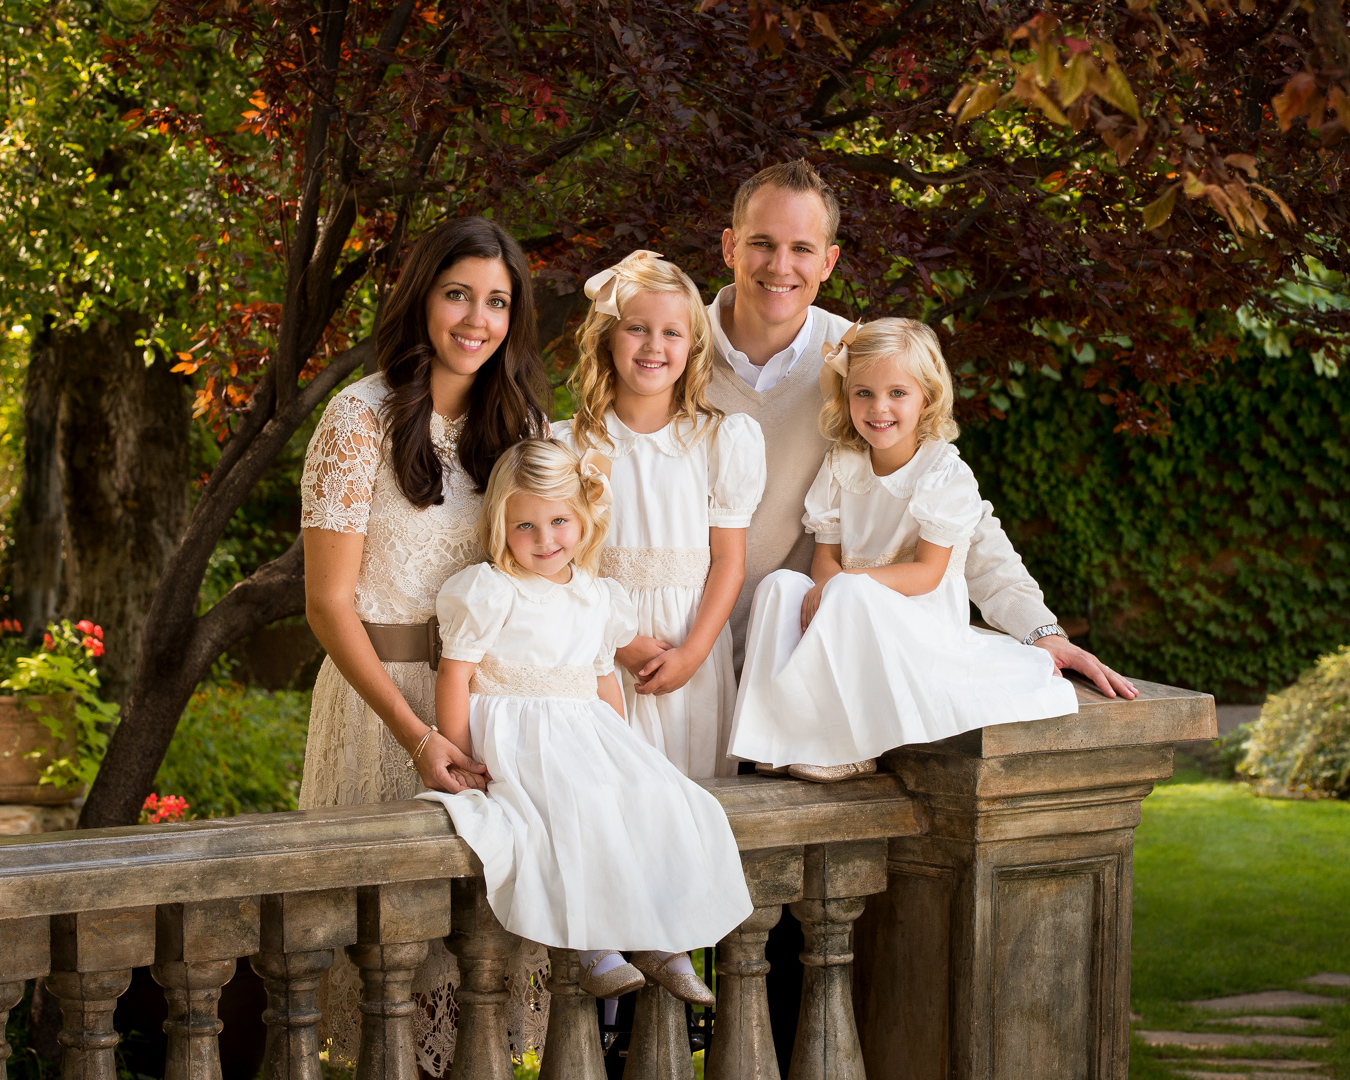 family picture portrait garden outdoor utah casual salt Lake city